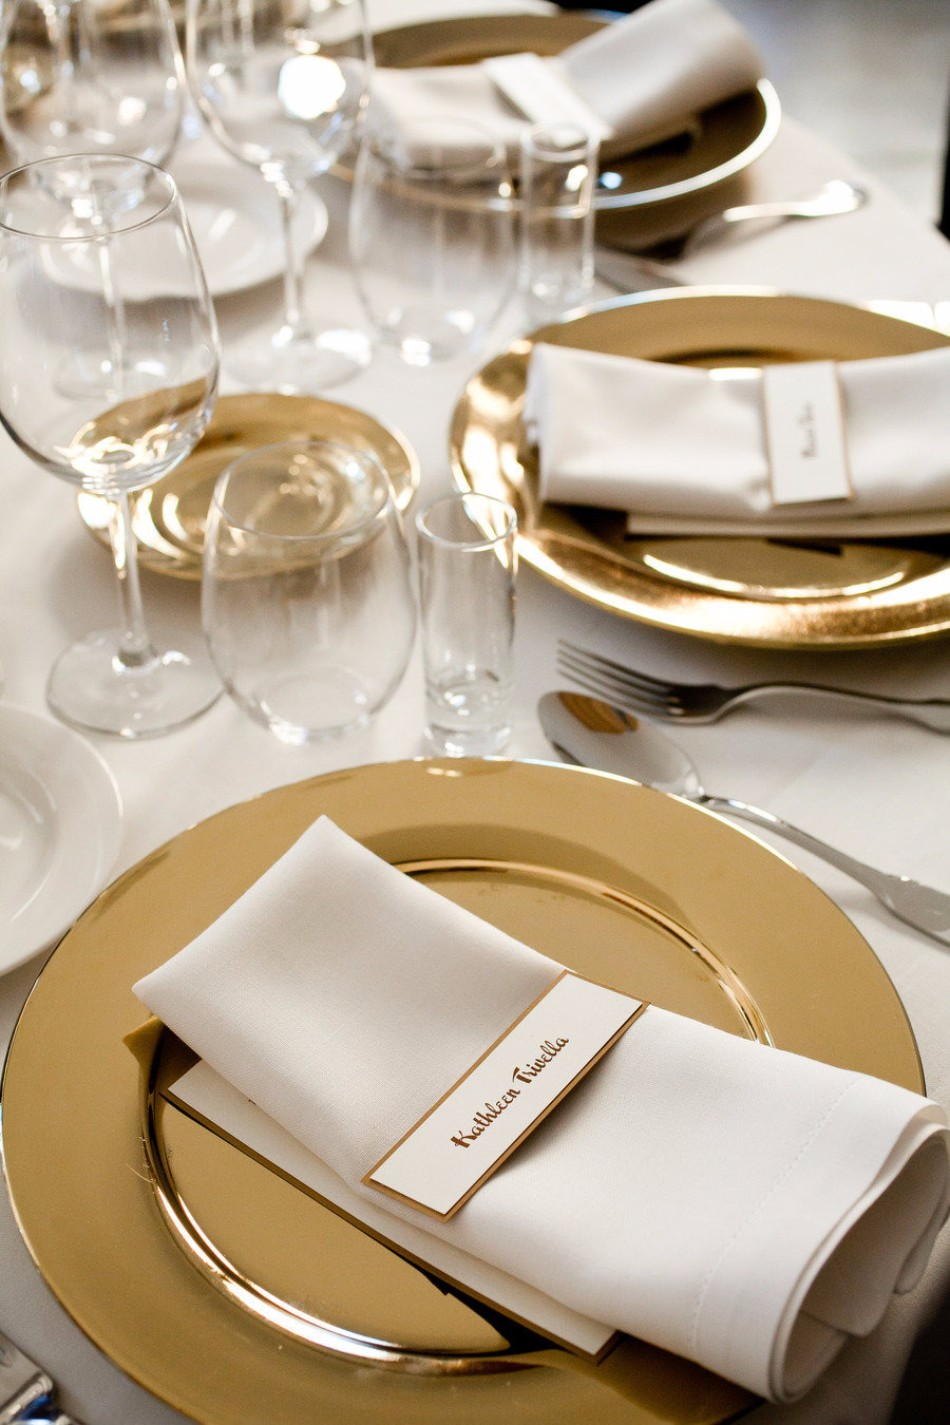 5 Ideas on How to Prepare The Best Dining Table Decor for Christmas | www.bocadolobo.com #moderndiningtables #diningroom #thediningroom #diningtable #christmas #christmasdecor #tableware #tabledecor @moderndiningtables dining table decor 5 Ideas on How to Prepare The Best Dining Table Decor for Christmas 5 Ideas on How to Prepare The Best Dining Table Decor for Christmas 7